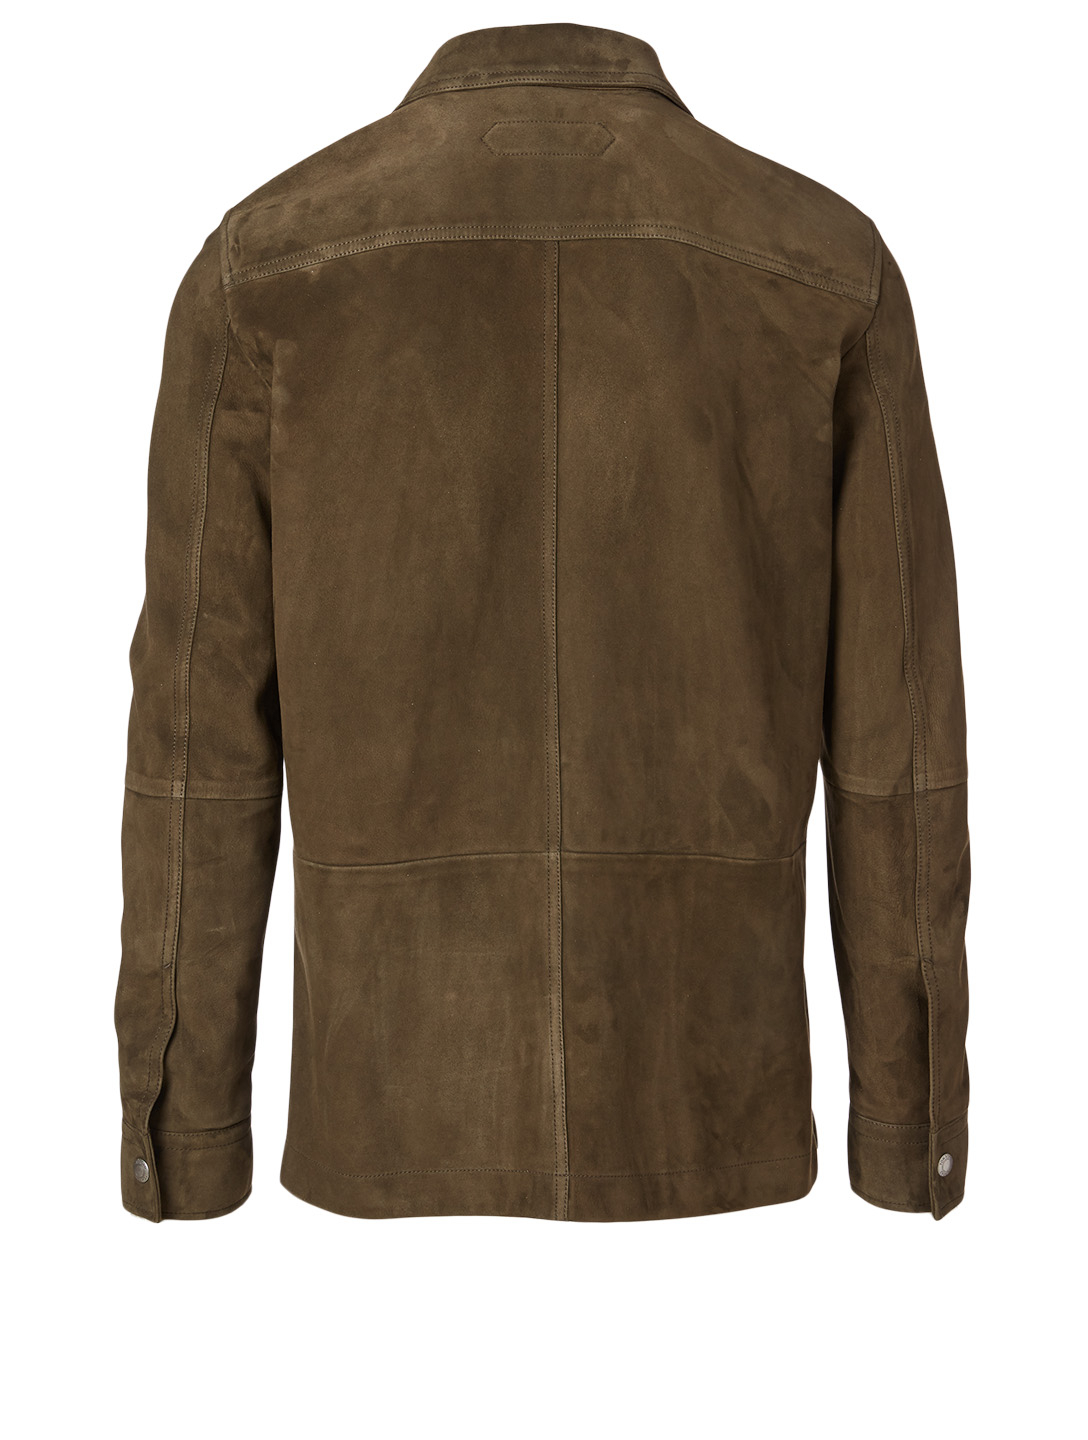 TOM FORD Suede Military Shirt Jacket Men's Green